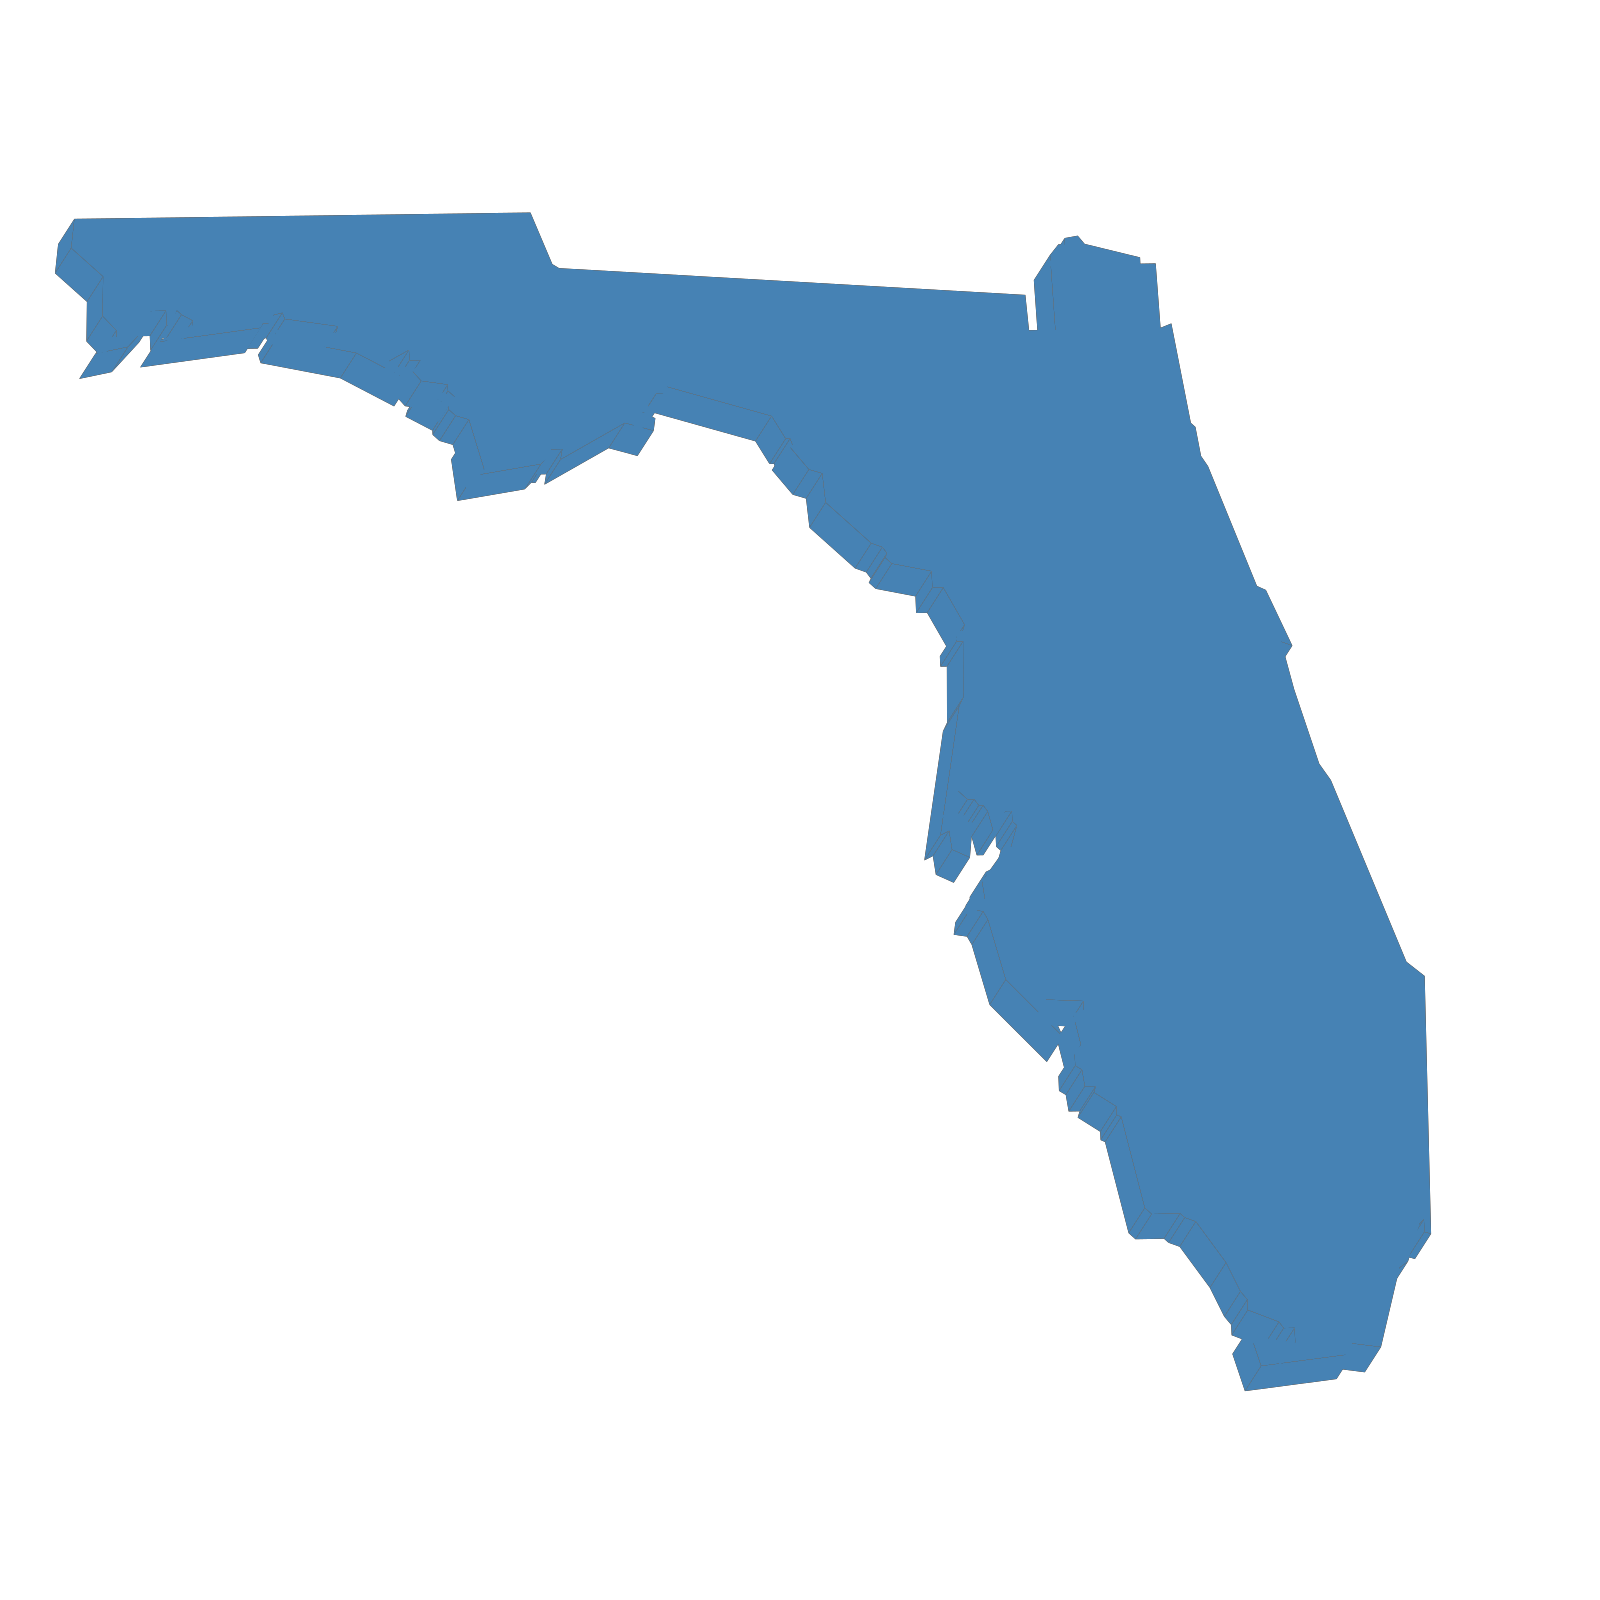 Florida Stock Illustrations. 9,429 Florida clip art images and royalty free  illustrations available to search from thousands of EPS vector clipart and  stock art producers.